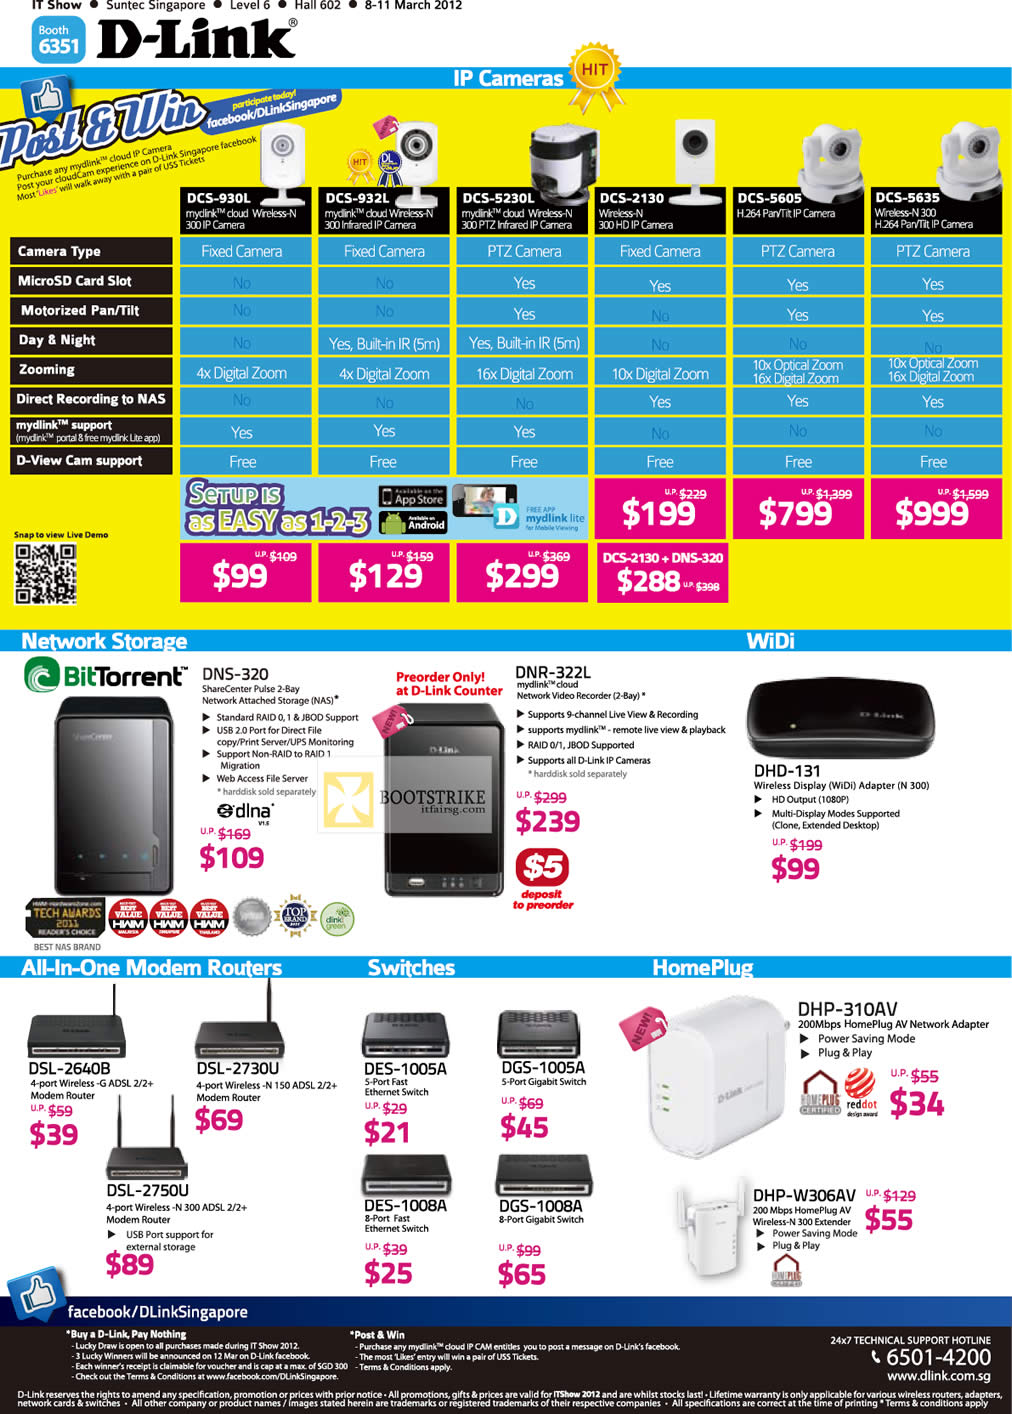 IT SHOW 2012 price list image brochure of D-Link Networking IPCam DCS-930L, DCS-5635, DCS-5605, DCS-2130, DCS-5230L, DCS-932L, DCS-930L, NAS DNR-322L, DNS-320, Modem Router, Switches, HomePlug